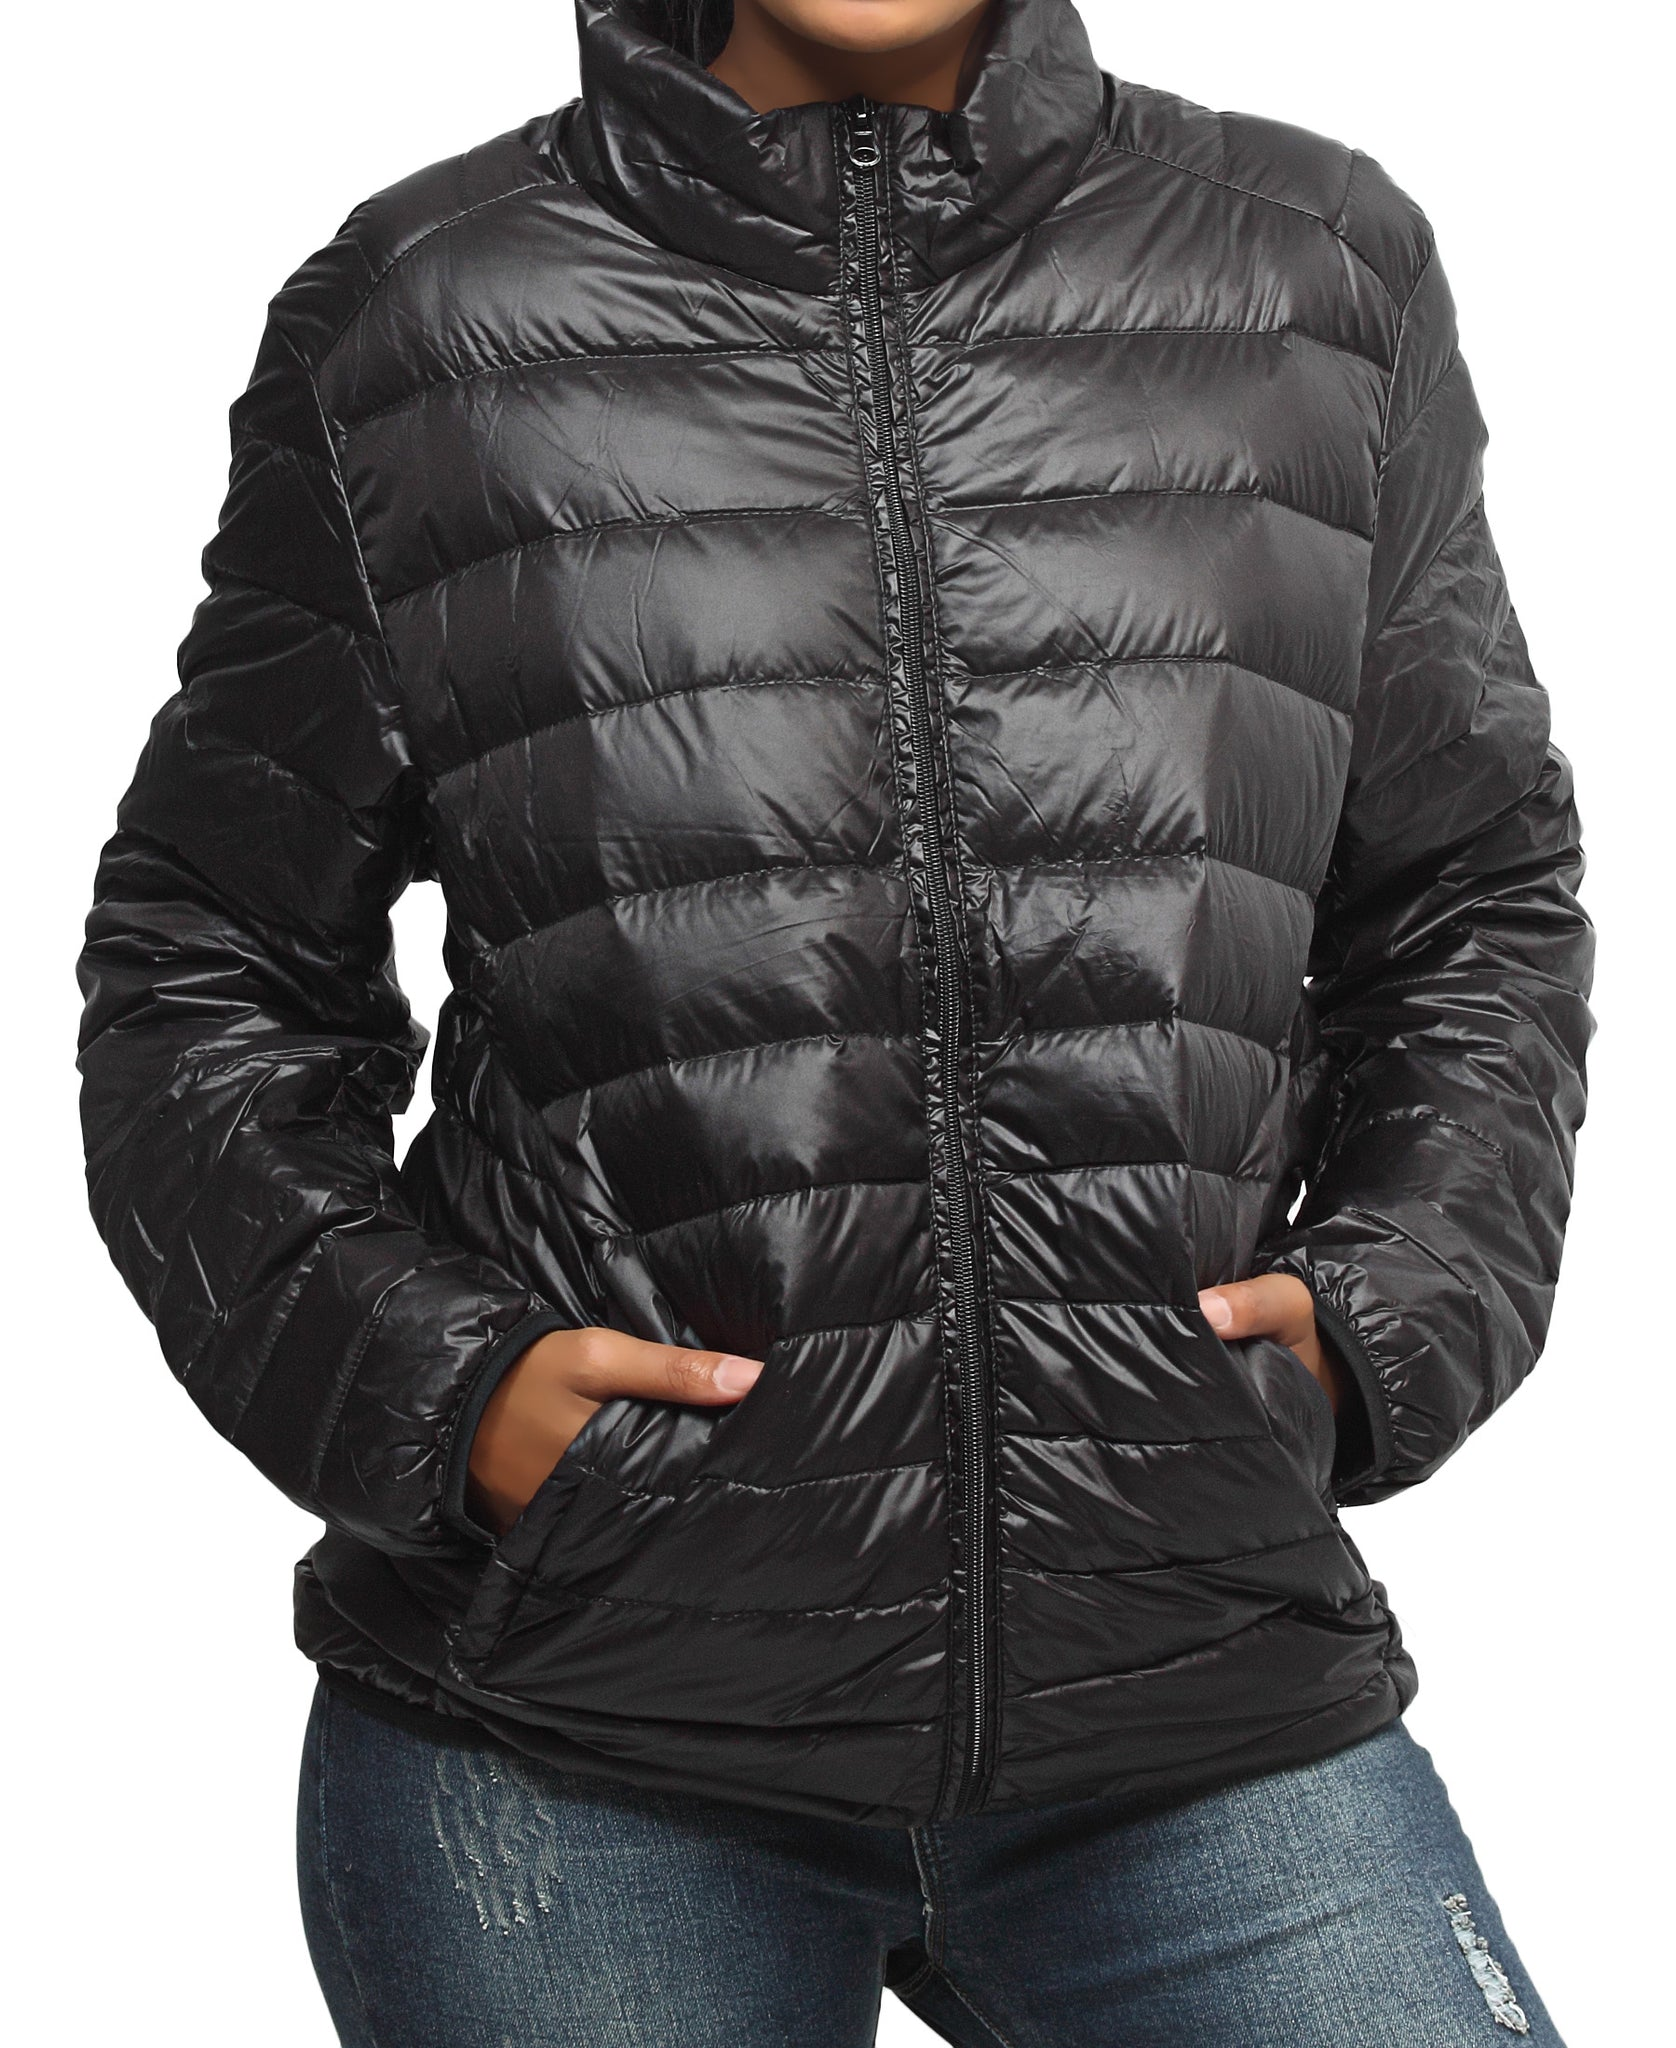 Compactable Unisex Travel Jacket - Black